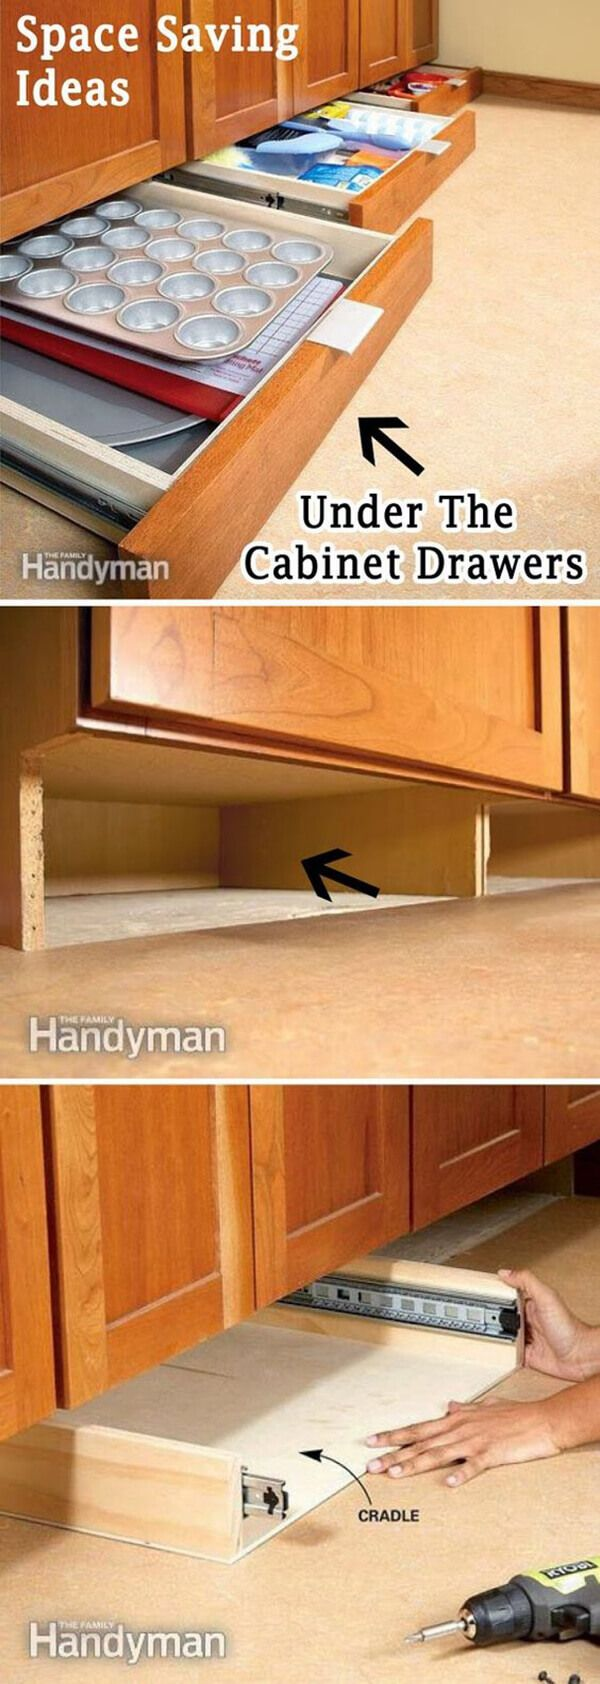 17 best ideas about kitchen drawers on pinterest drawers for Hidden kitchen storage ideas